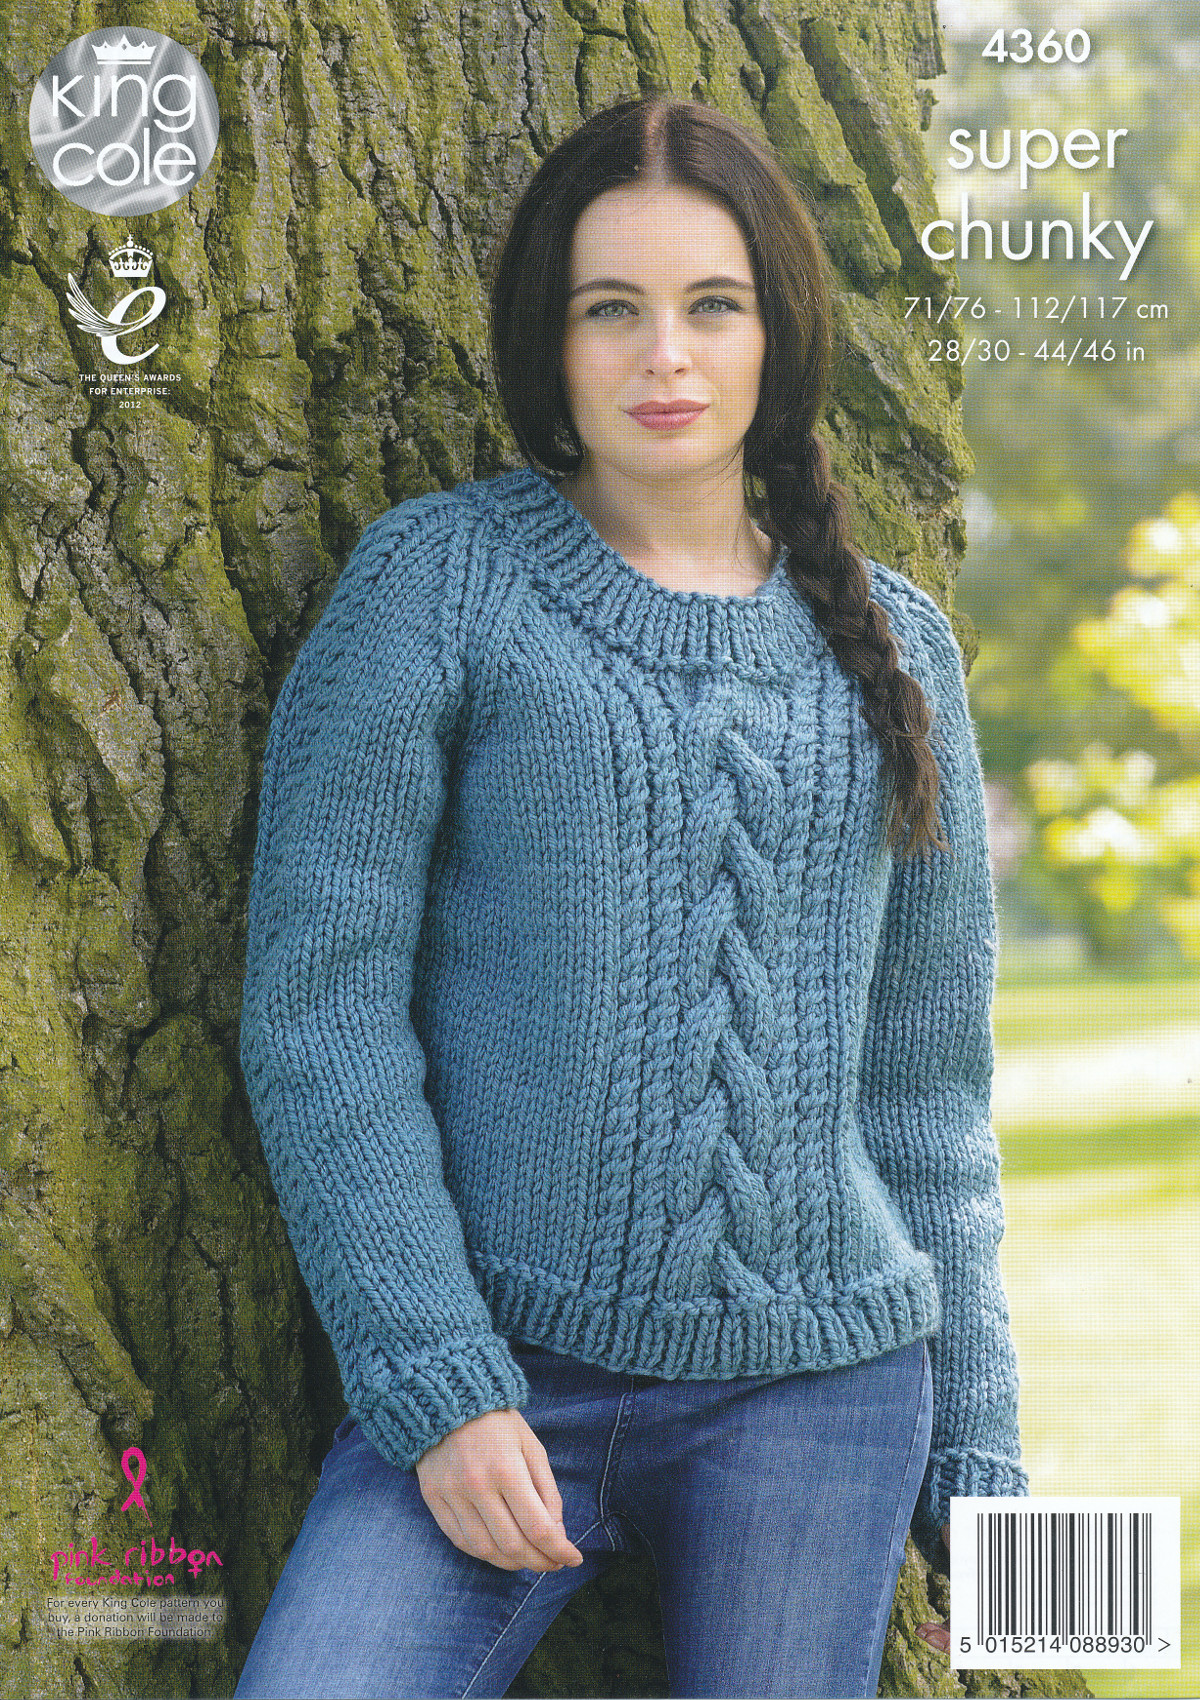 Knitting In The Round Sweater Patterns Free : Ladies Super Chunky Knitting Pattern King Cole Cable Knit Sweaters Jumpers 43...